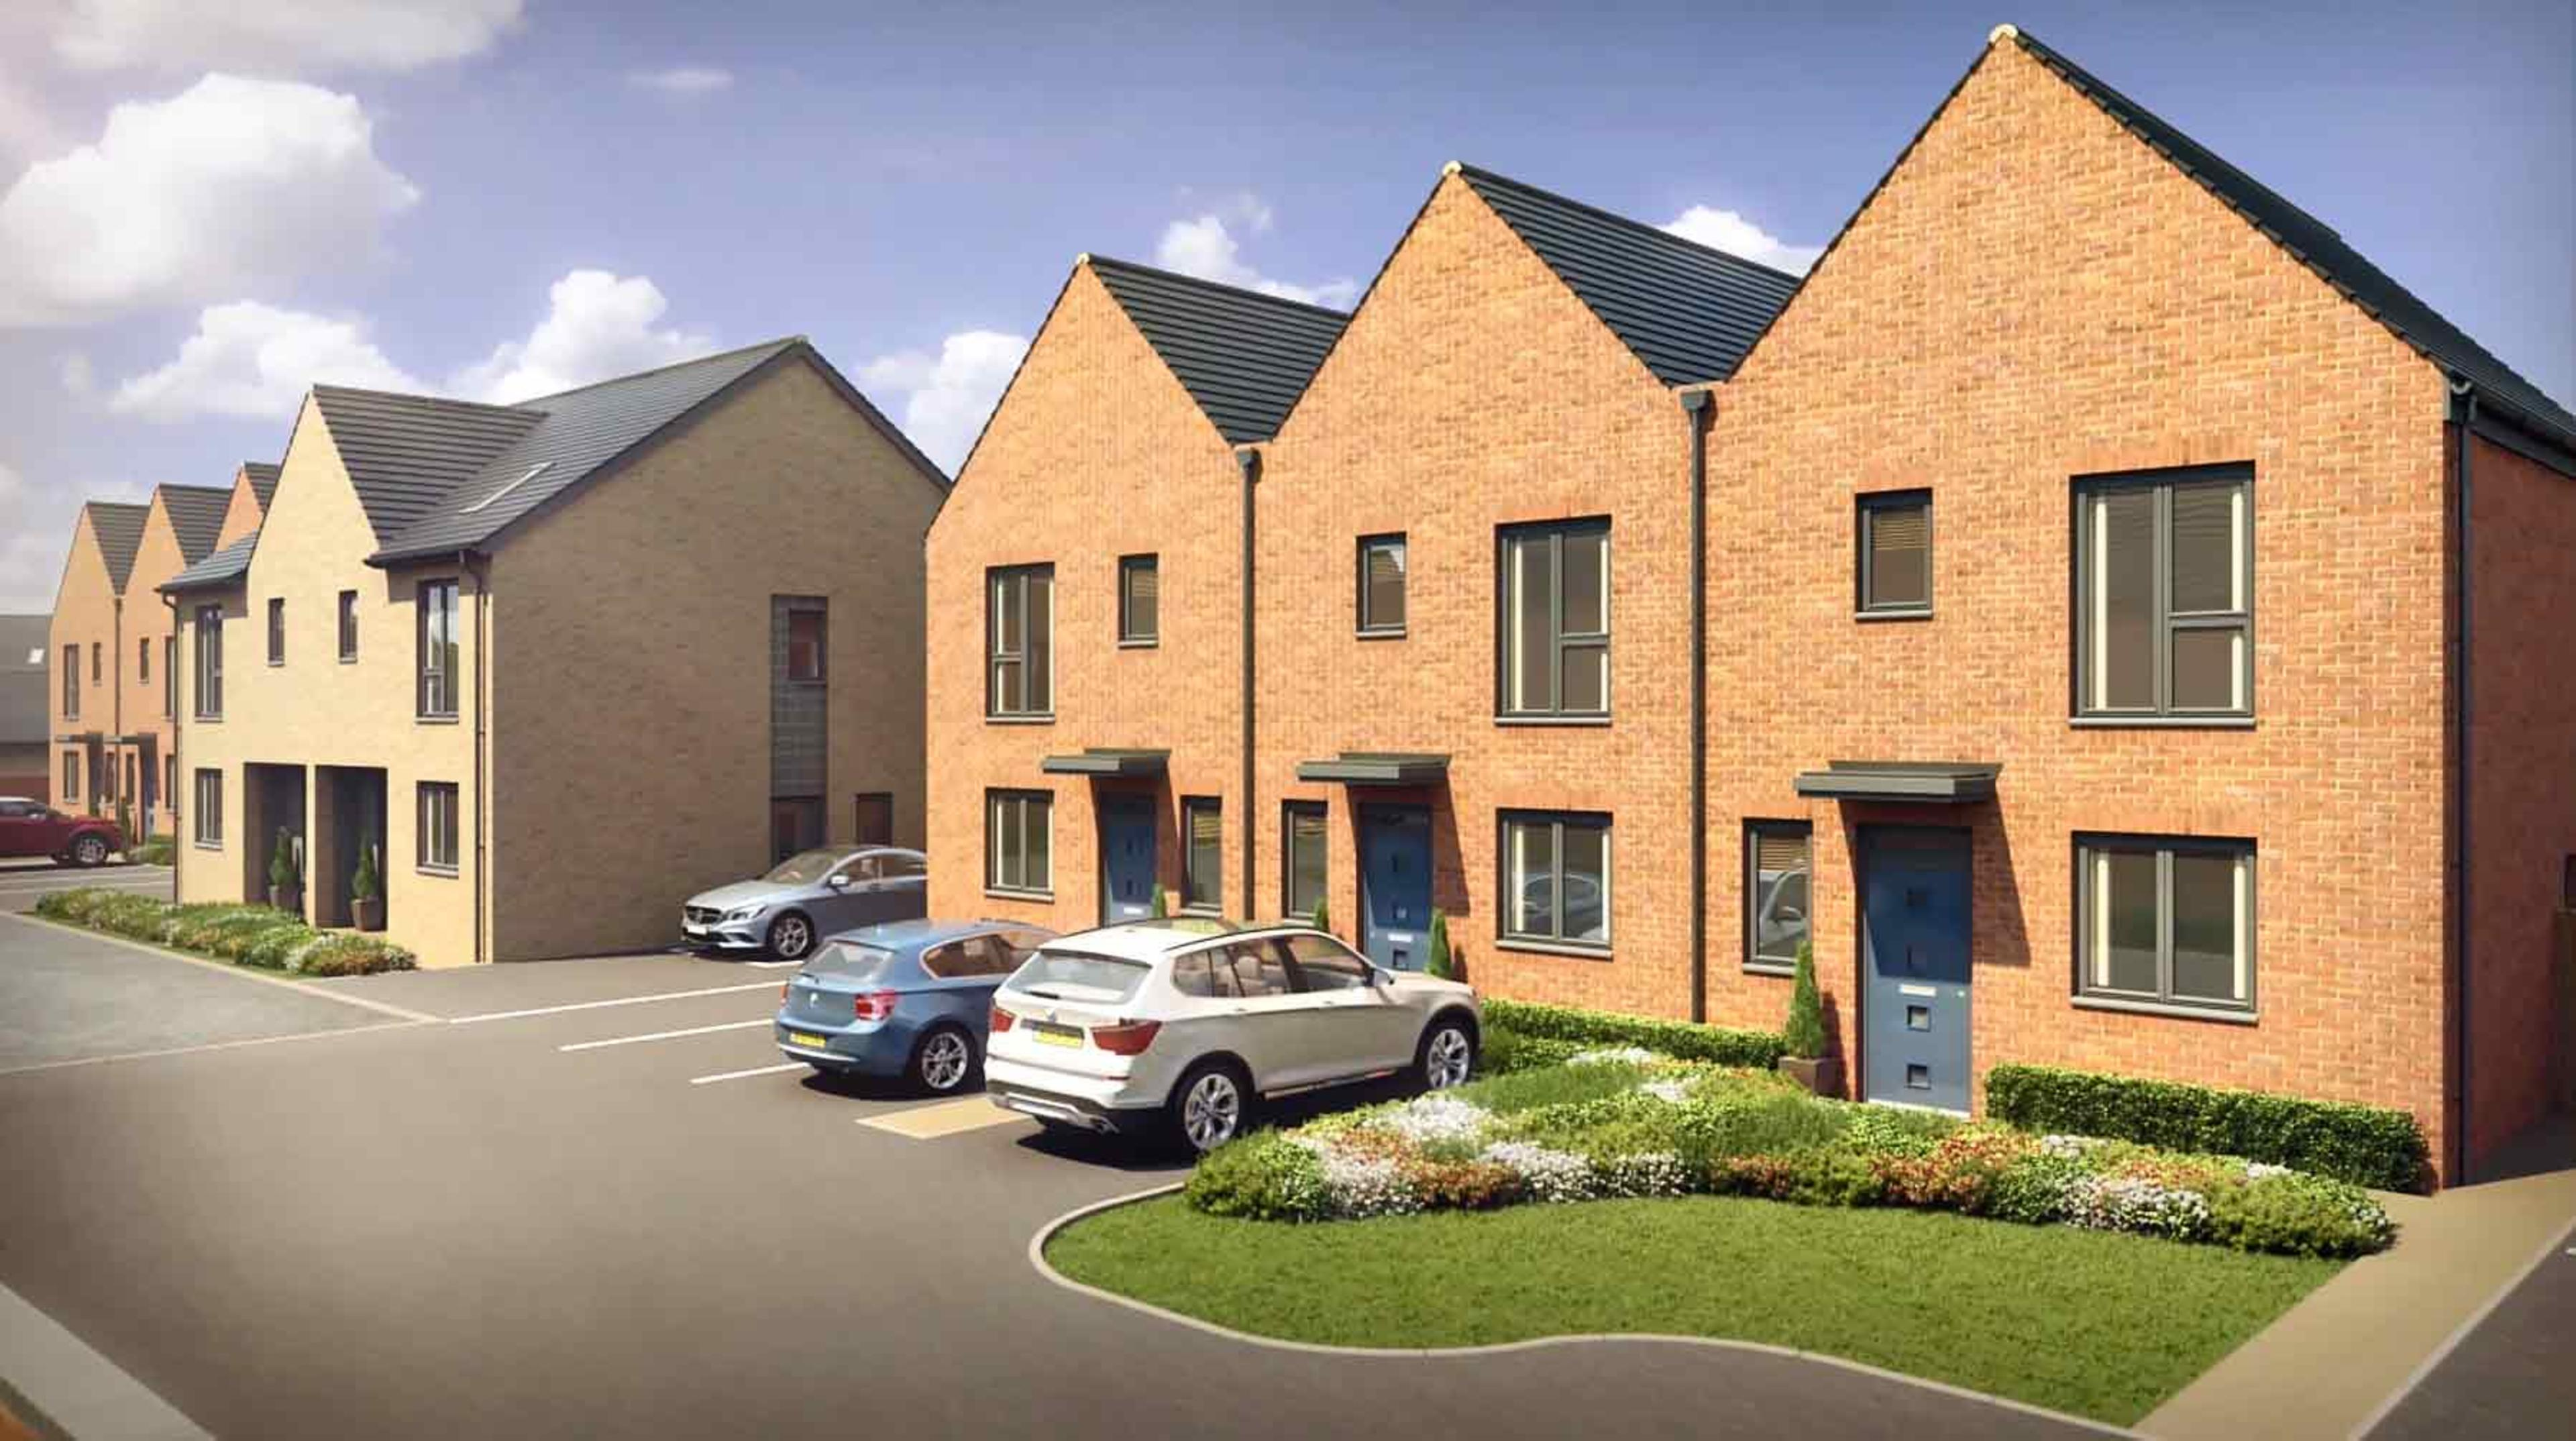 CGI of new build semi-detached homes and cars parked in off-street bays at Meaux Rise